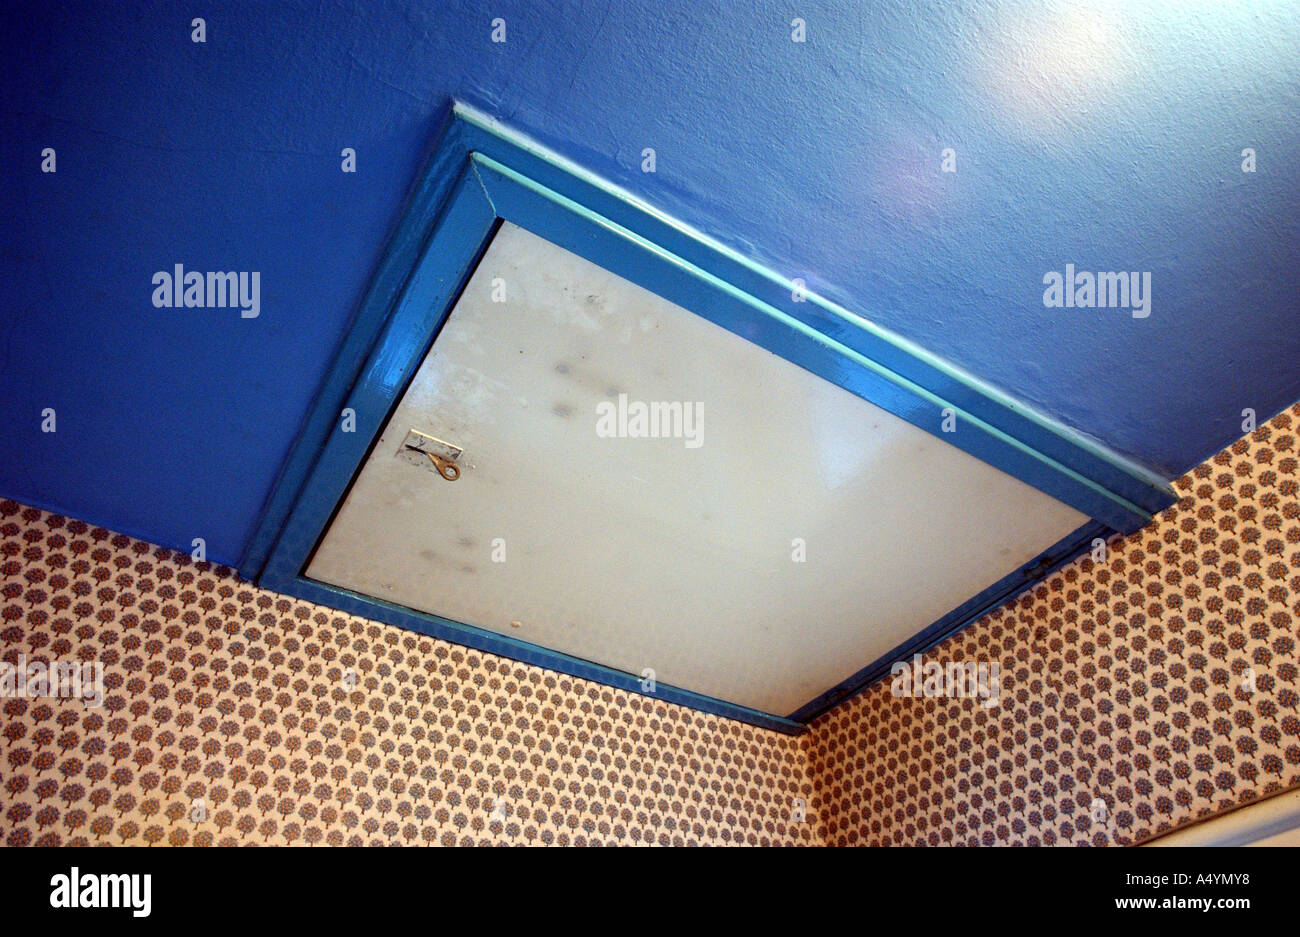 Attendance In The Parents House: Detail And Memories. Roof Hatch, Hatch To  The Roof With Stairs On Blue Reason With Flower